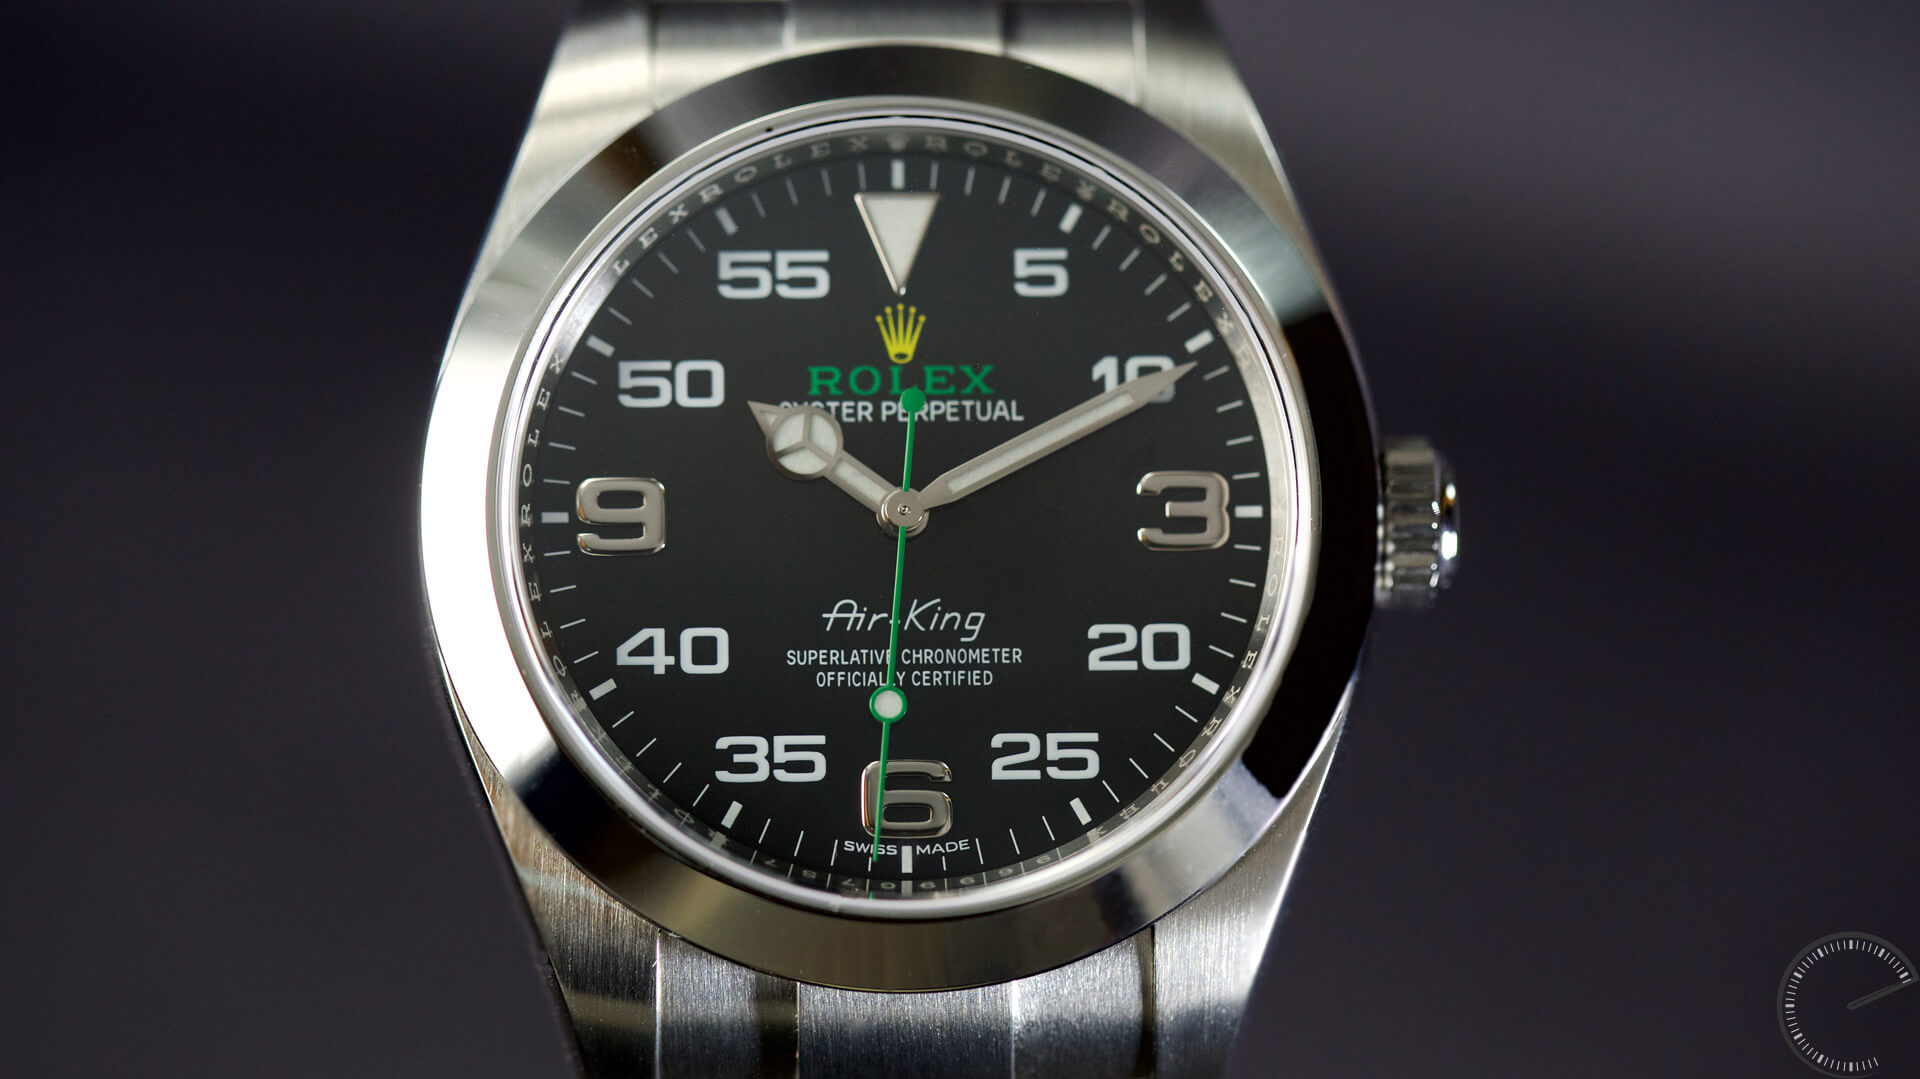 Image of Rolex Oyster Perpetual Air King, Baselworld 2016 - watch review